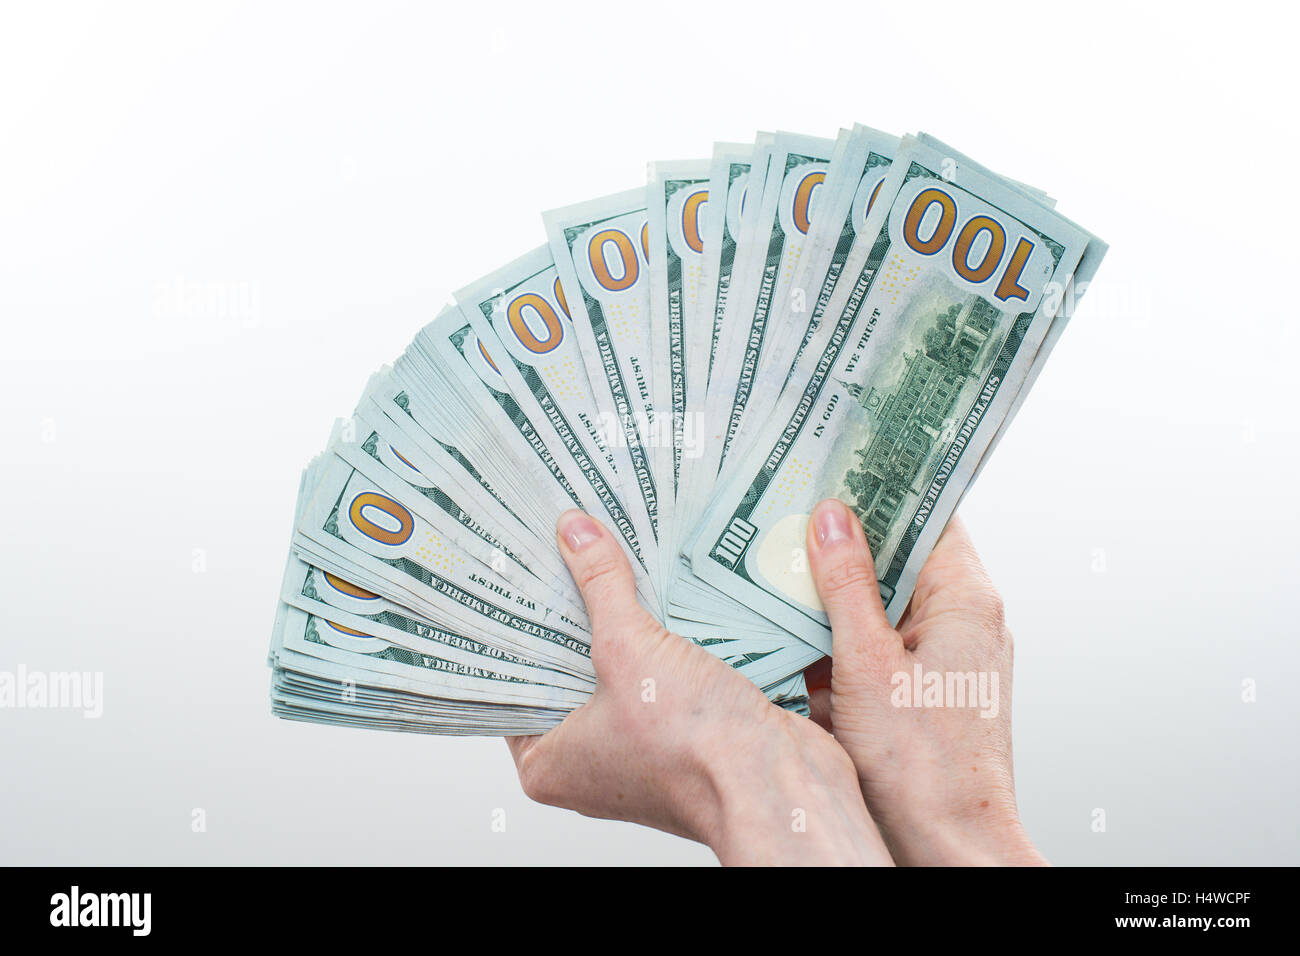 300 dollar cash advance image 7